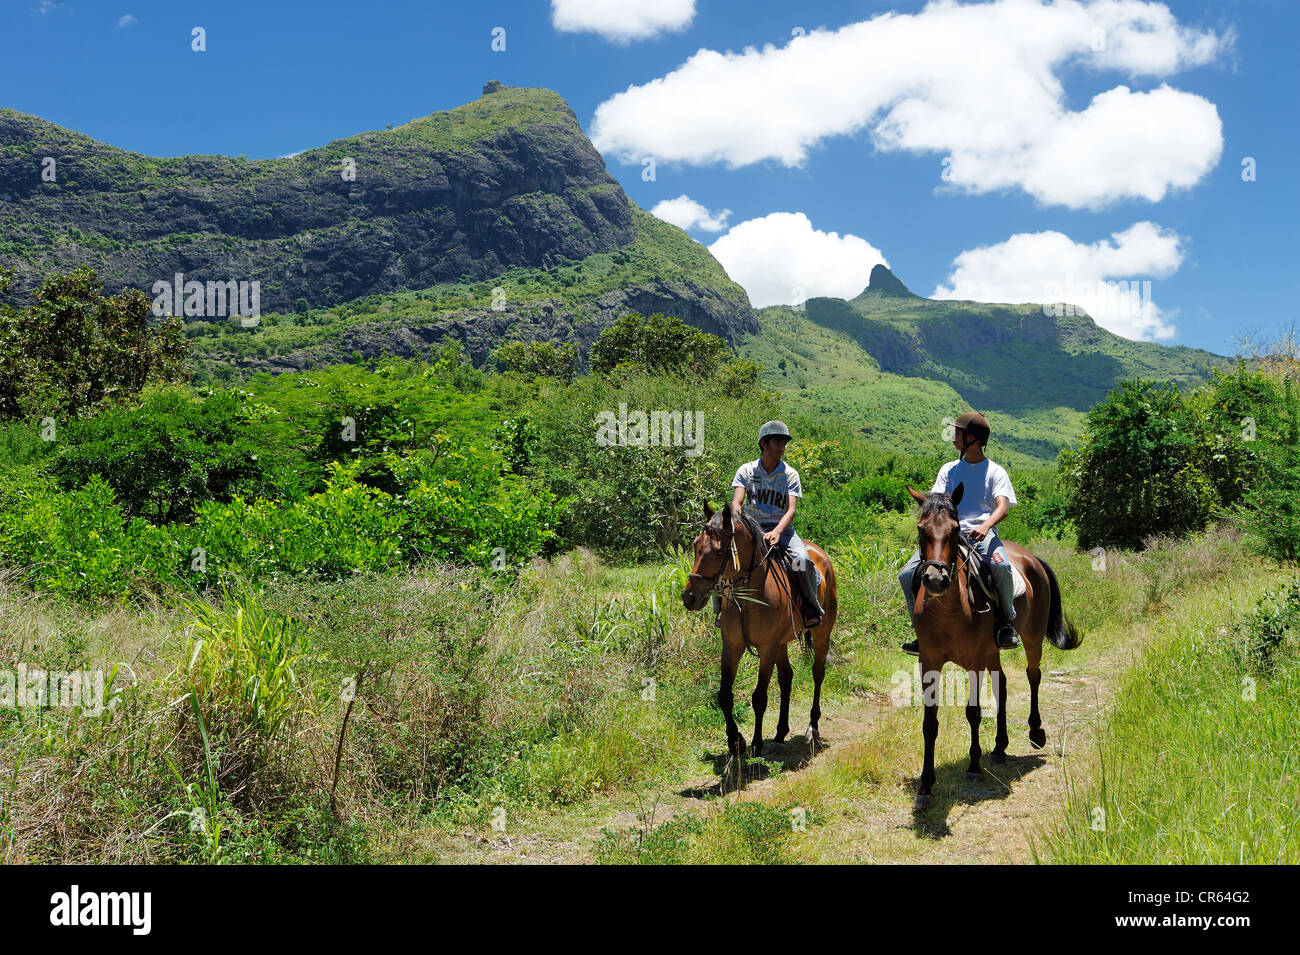 Mauritius, Moka District, Pailles, Domaine des Pailles, horse rides in the heart of the Moka Range Valley - Stock Image